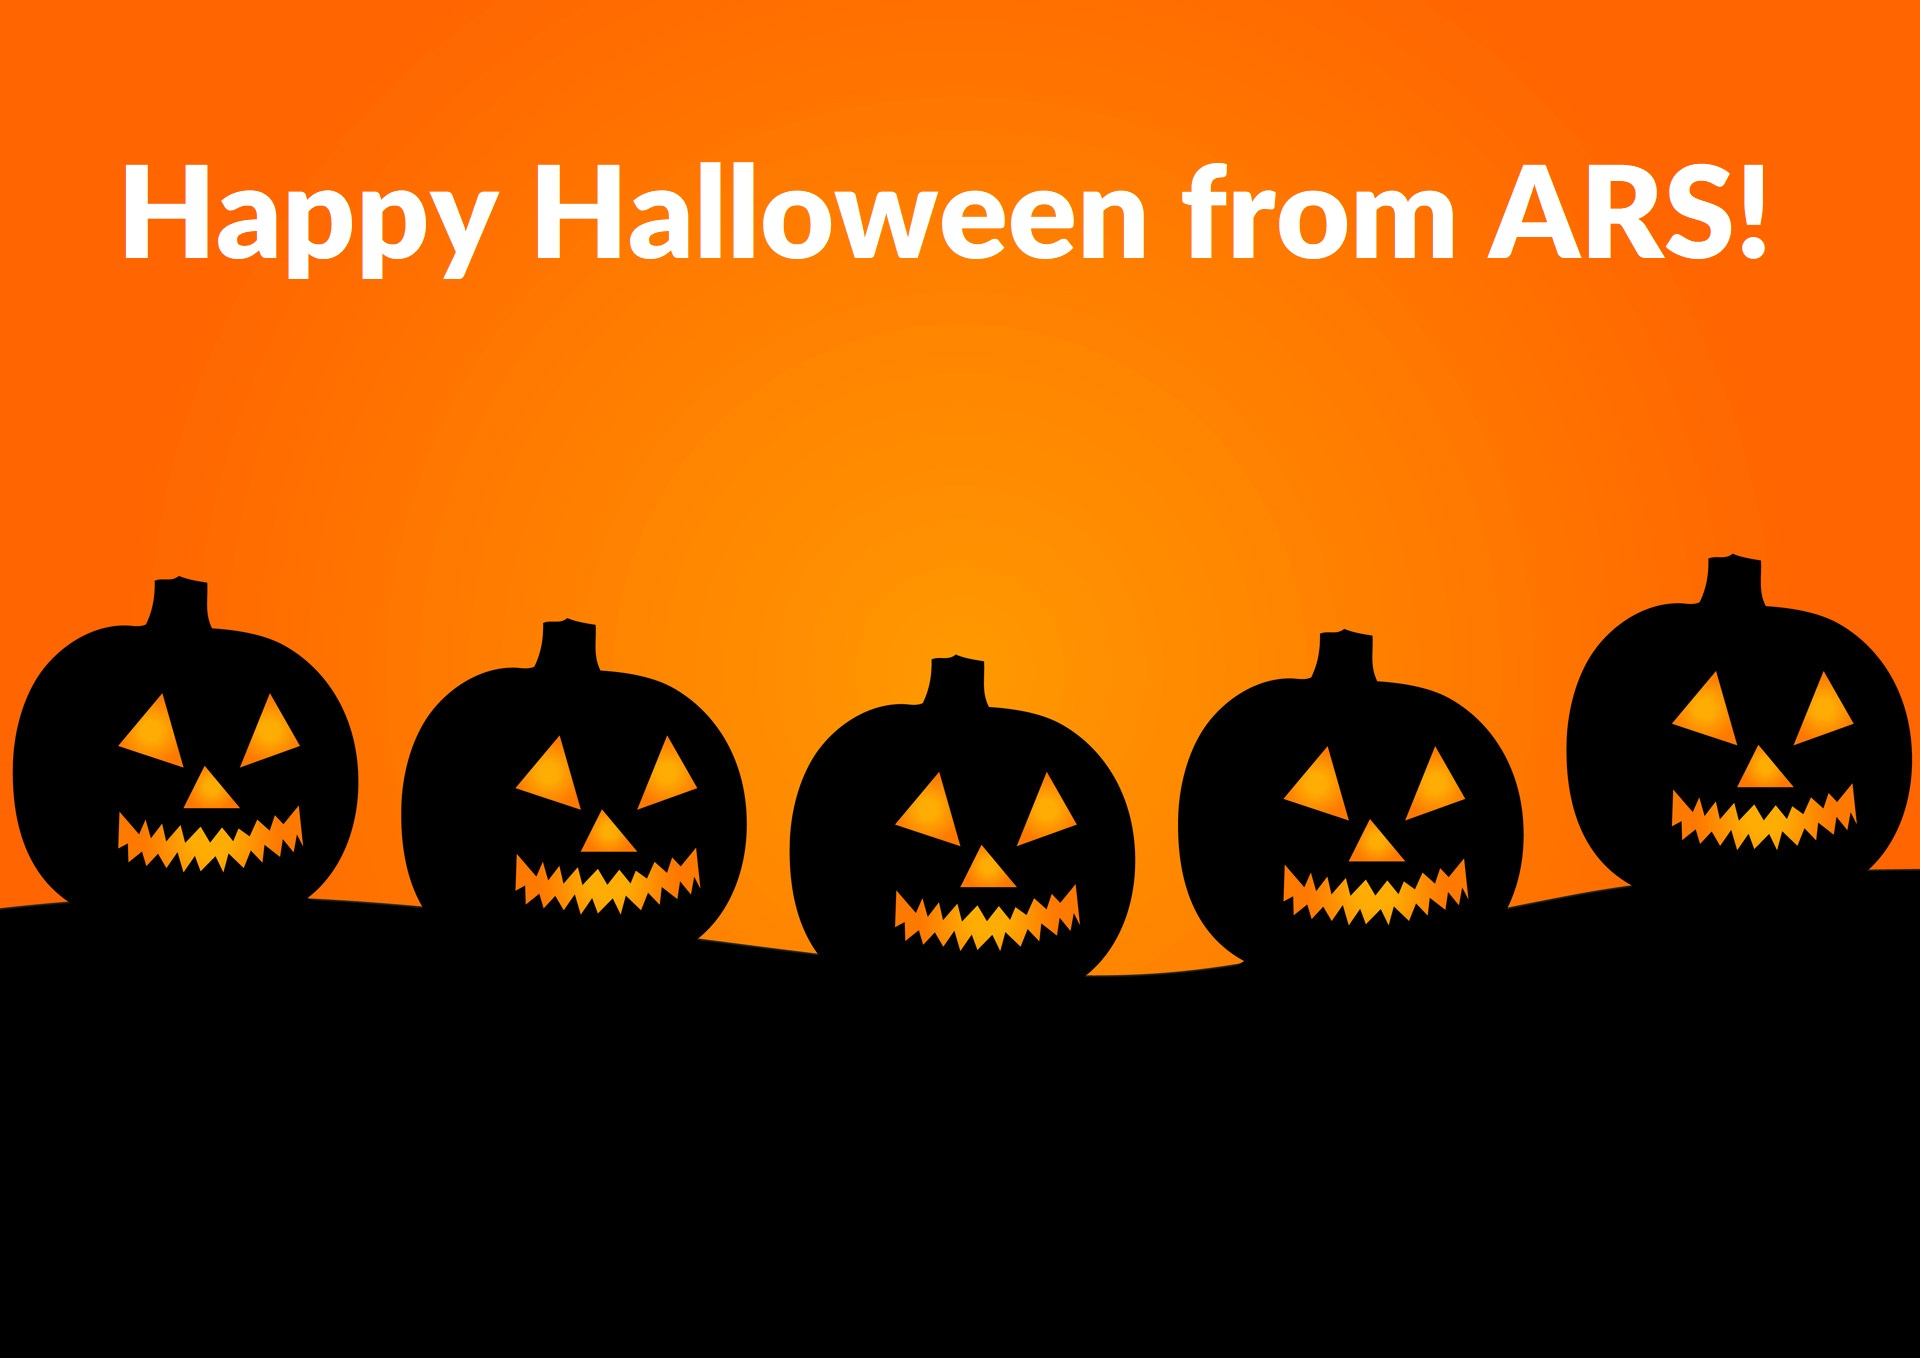 Happy Halloween from ARS - Advanced Remarketing Services